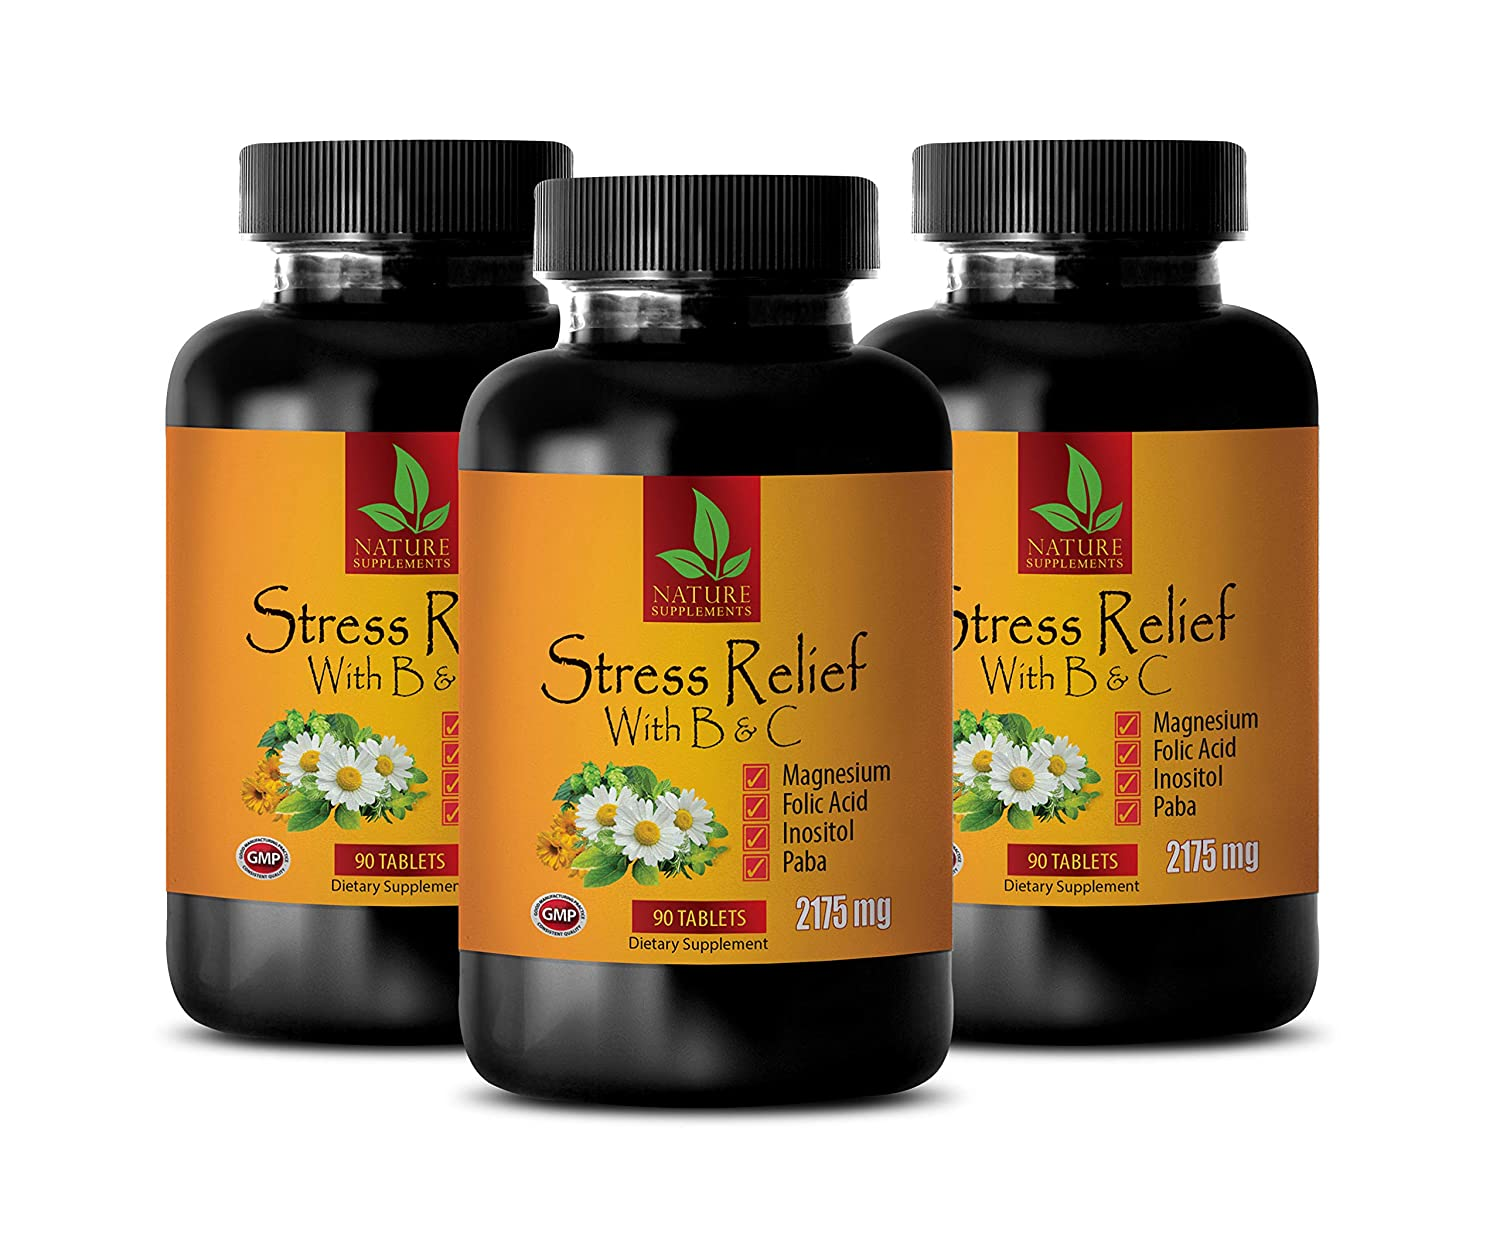 Depression Vitamins Women - Stress Relief with B & C 2175 MG - Dietary Supplement - Valerian Root Herbal Supplement - 3 Bottles 270 Coated Tablets